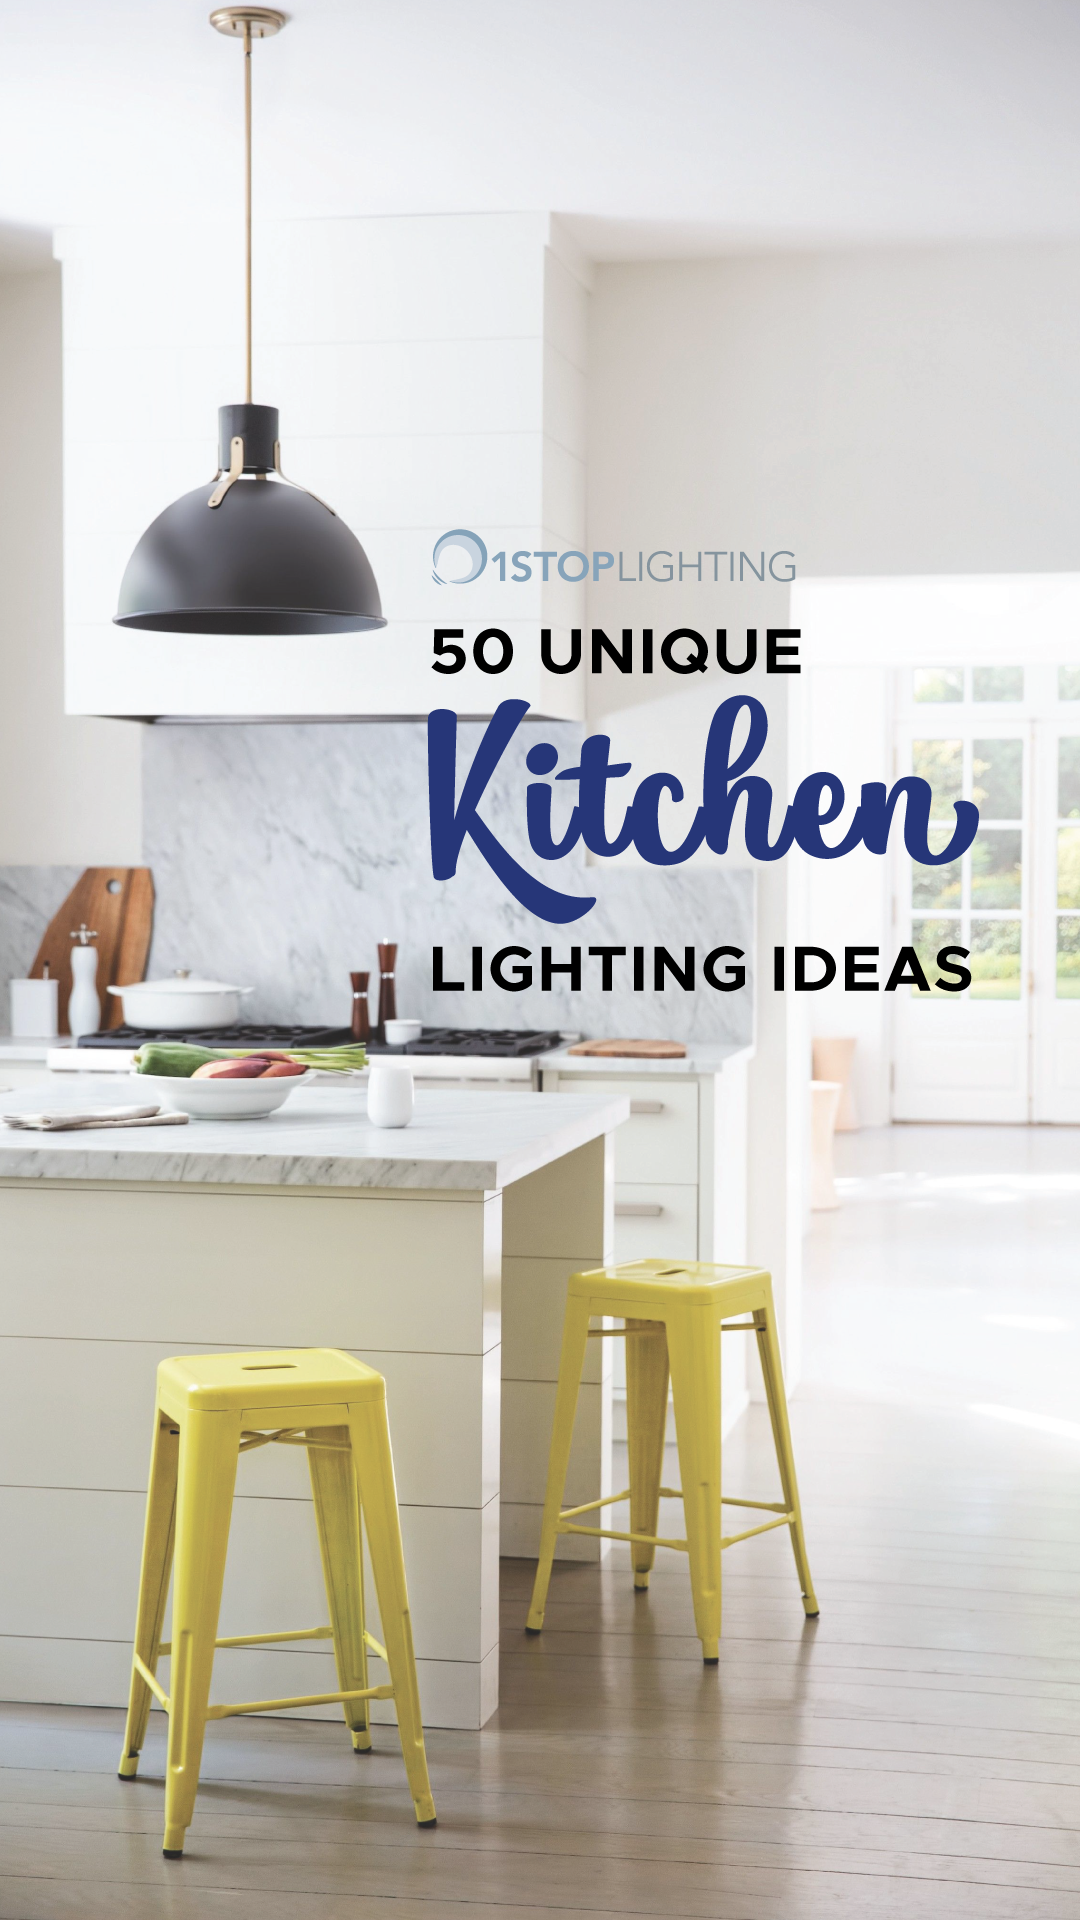 50 Unique Kitchen Lighting Ideas That Include Chandeliers Pendant Lights Island Lights And Flush Unique Kitchen Kitchen Lighting How To Install Countertops